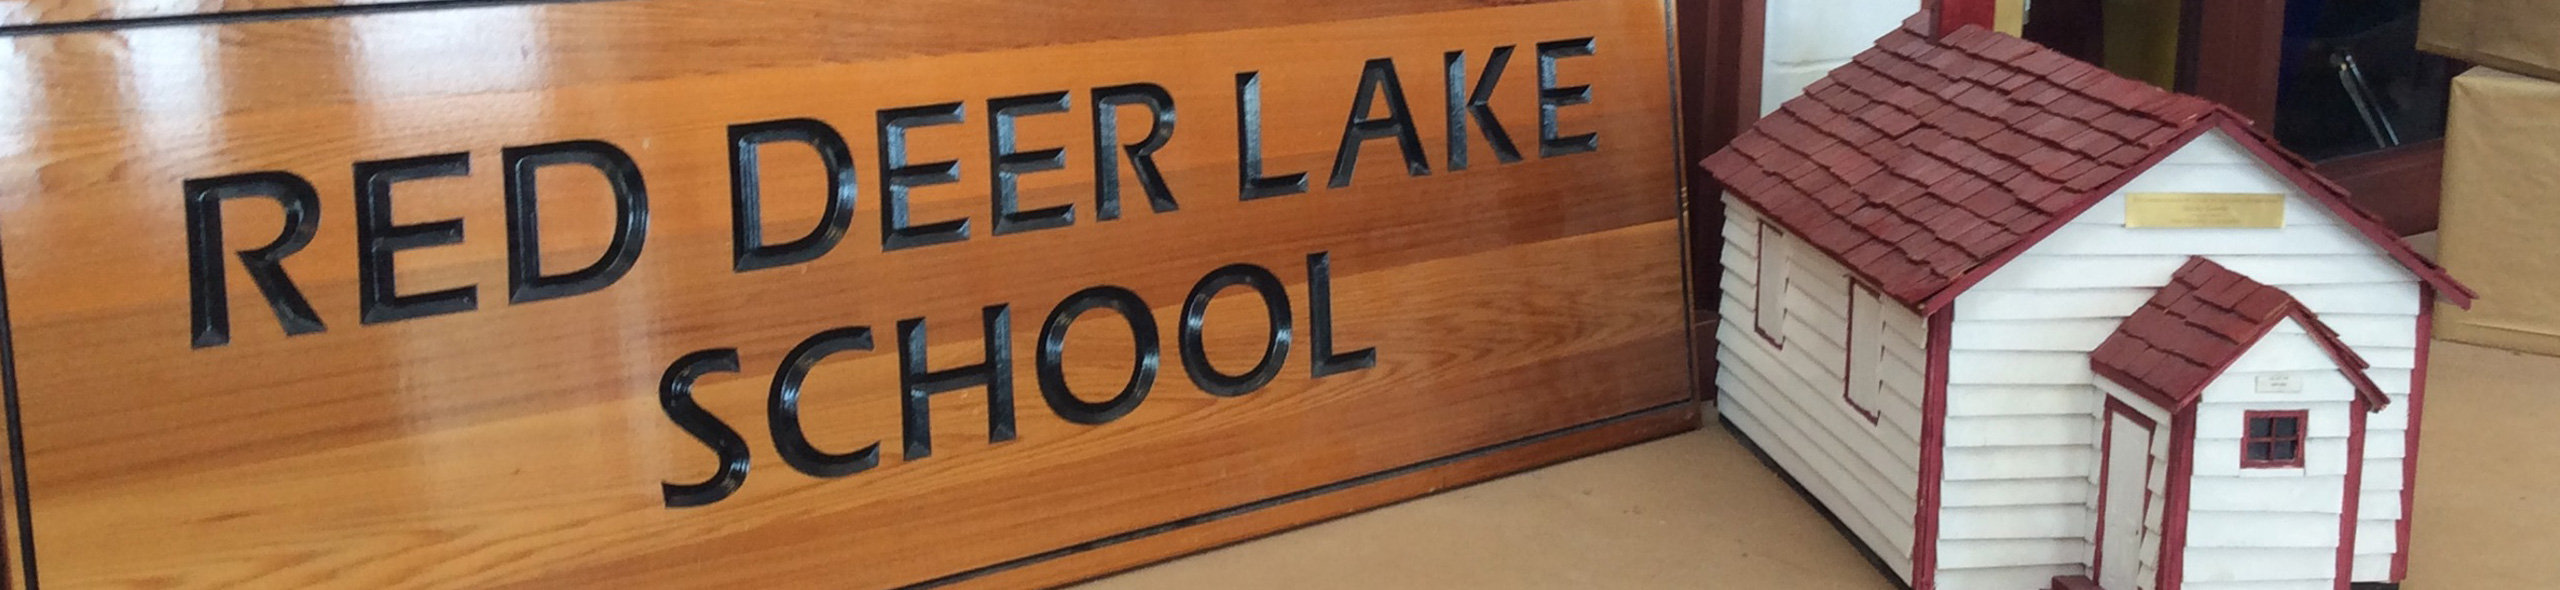 Calendar | Red Deer Lake School inside Red Deer School Calendar